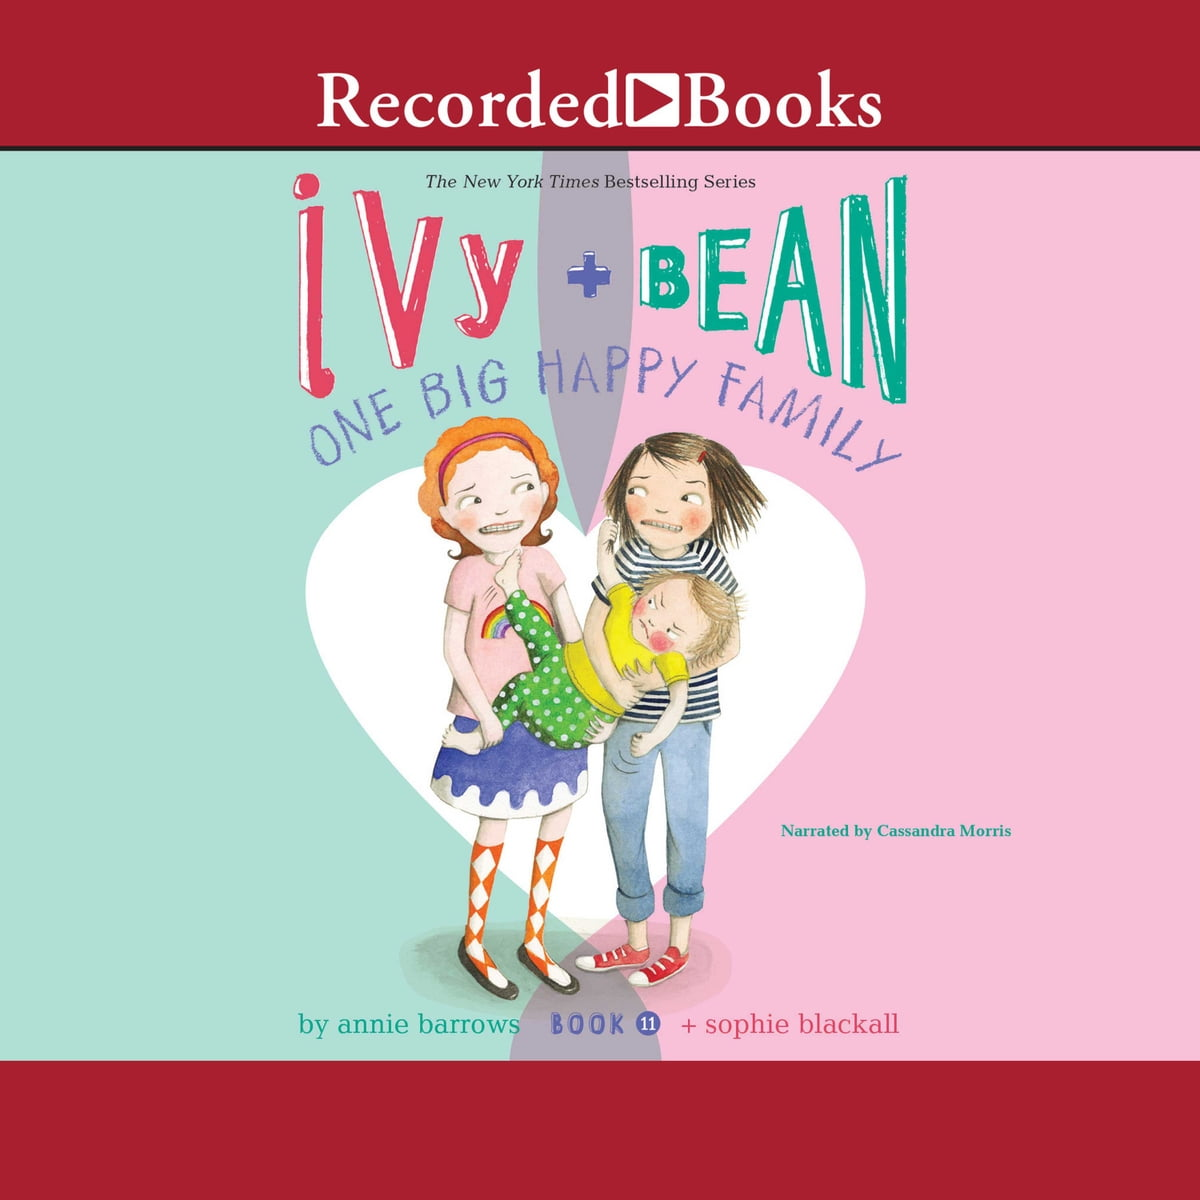 Ivy and Bean: One Big Happy Family audiobook by Annie Barrows - Rakuten Kobo